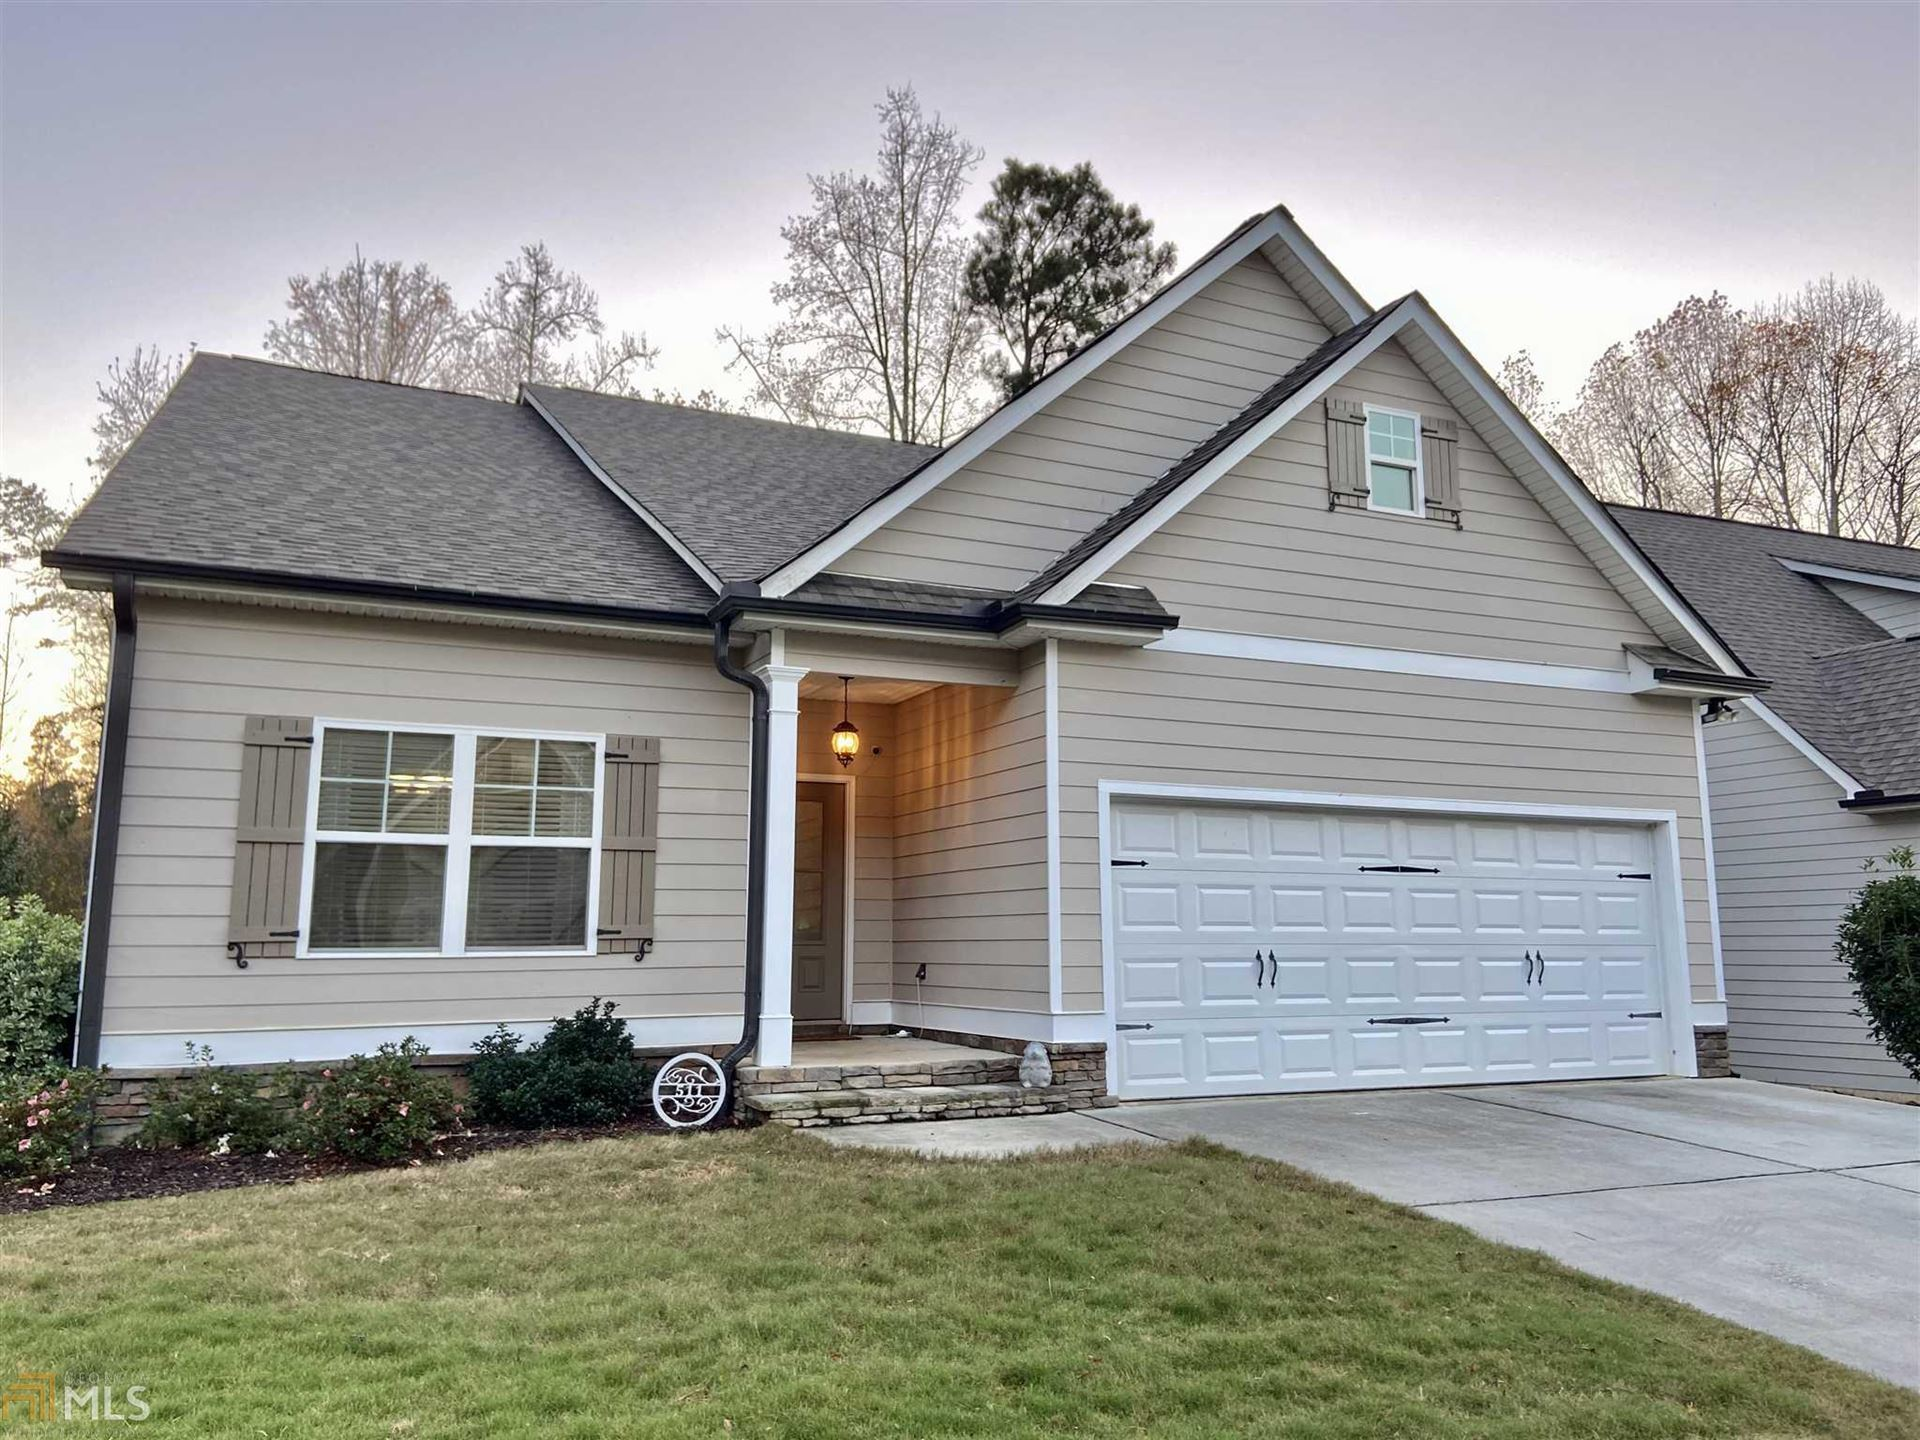 511 Tradition Pl, LaGrange, GA 30241 - #: 8888942